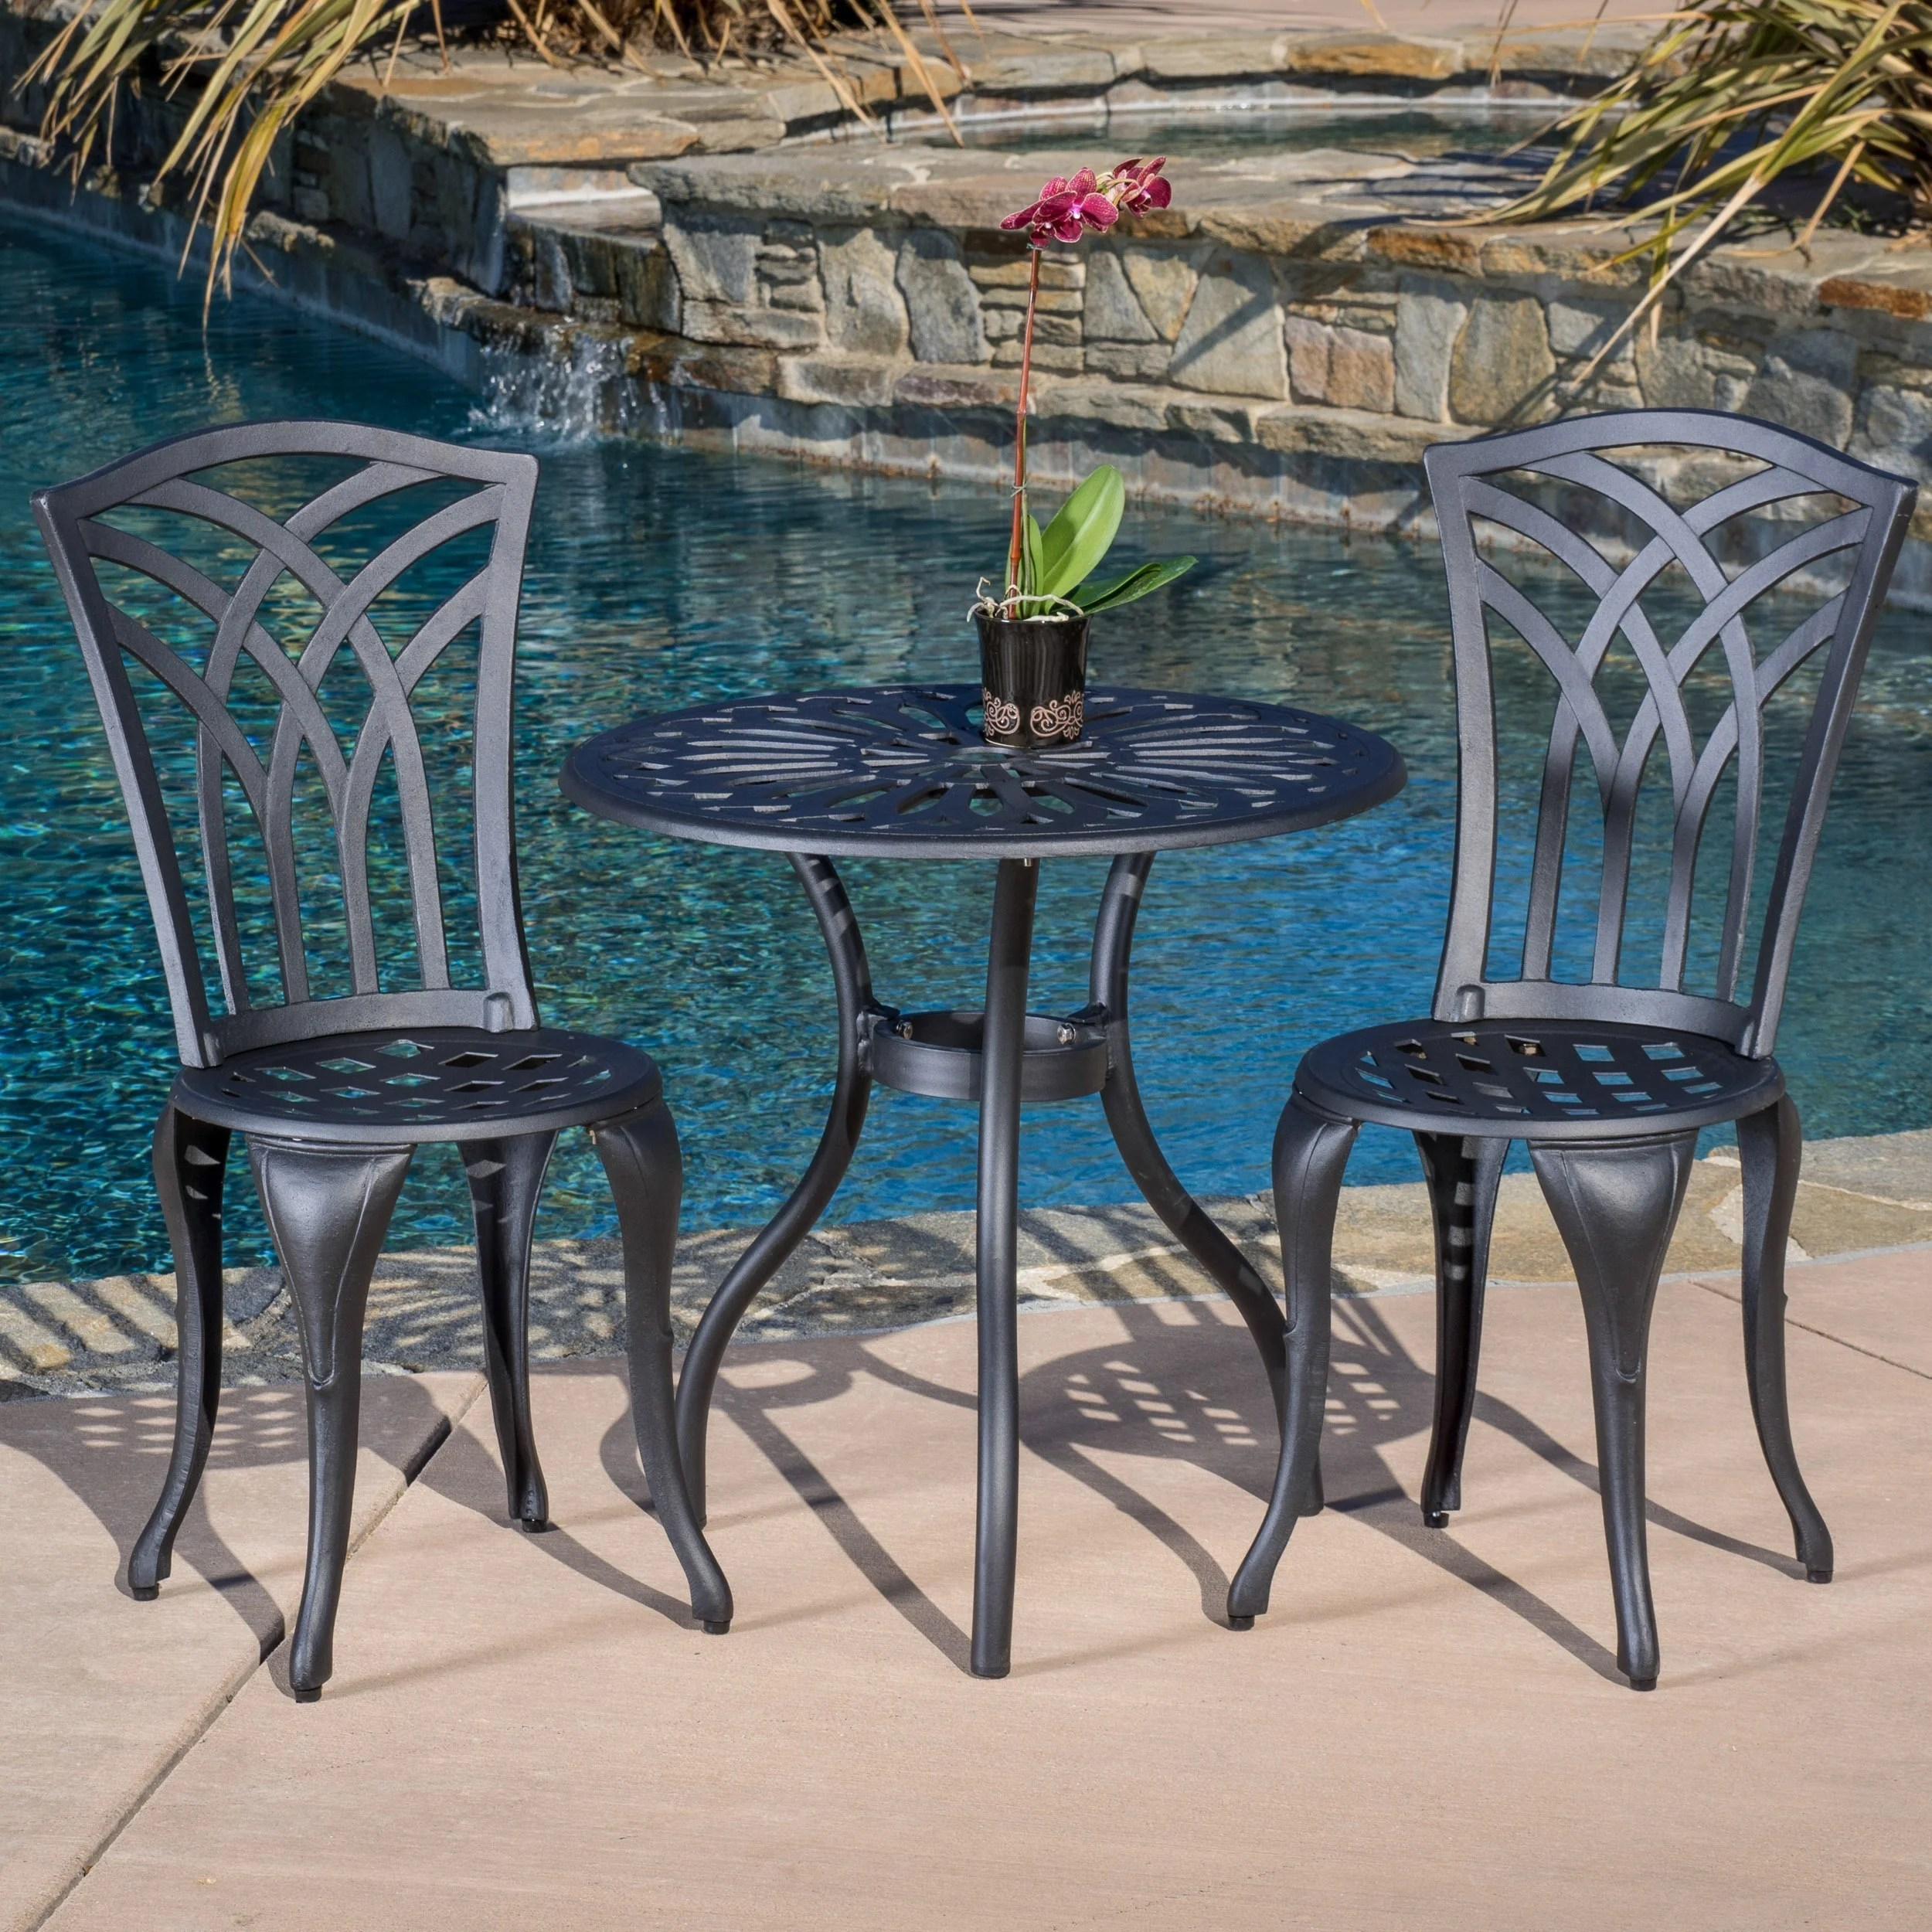 Metal Bistro Table And Chairs Sanders 3 Piece Black And Sand Cast Aluminum Outdoor Bistro Set By Christopher Knight Home